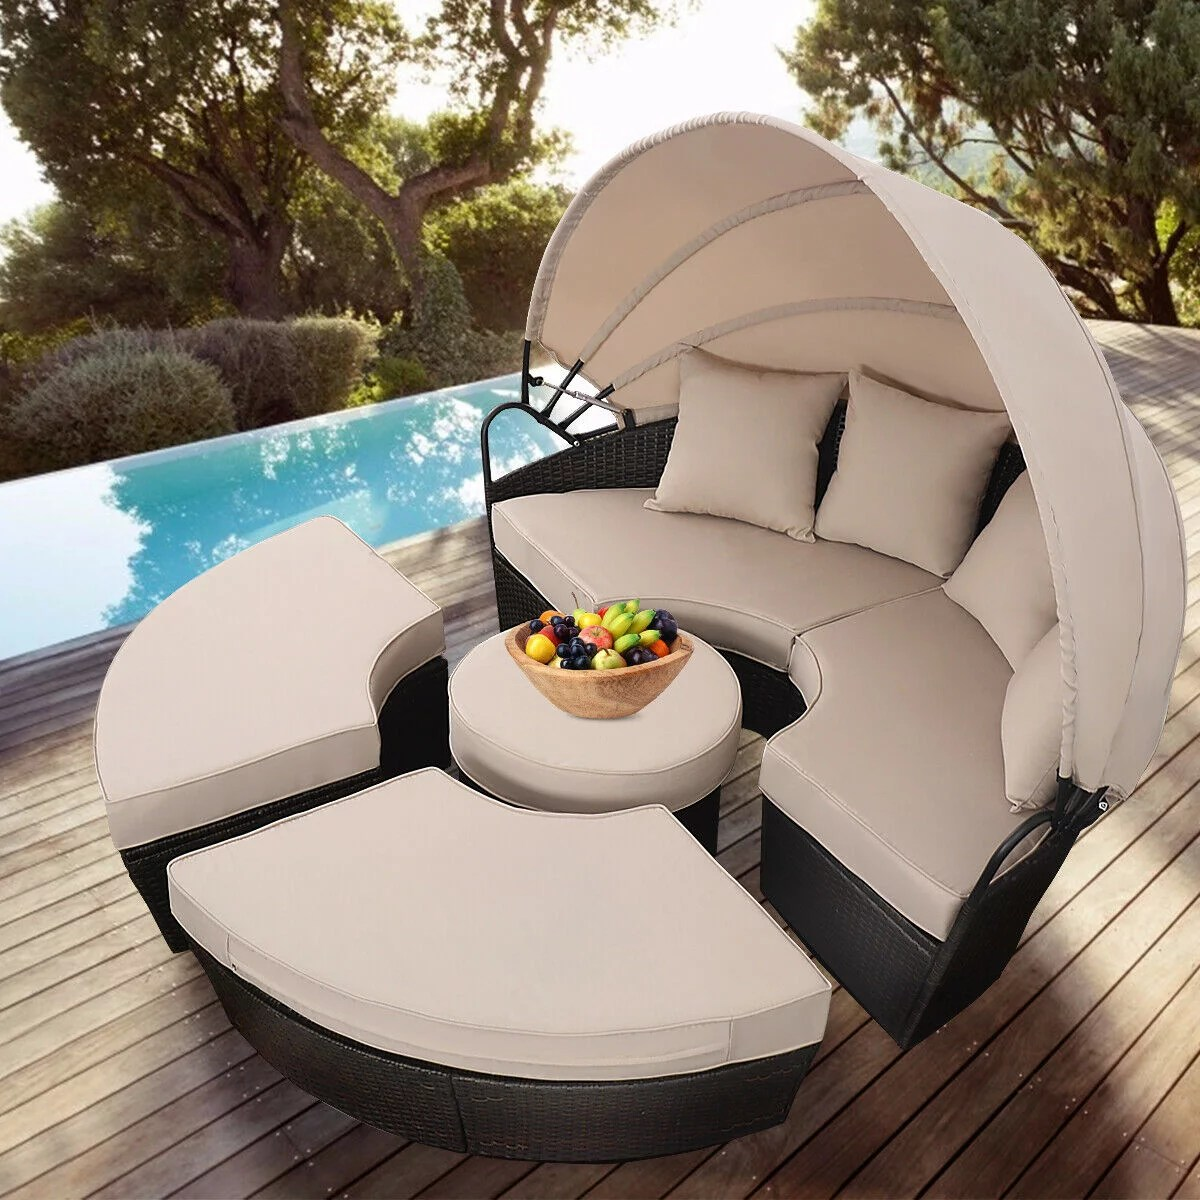 Round Patio Furniture Costway Outdoor Mix Brown Rattan Patio Sofa Furniture Round Retractable Canopy Daybed